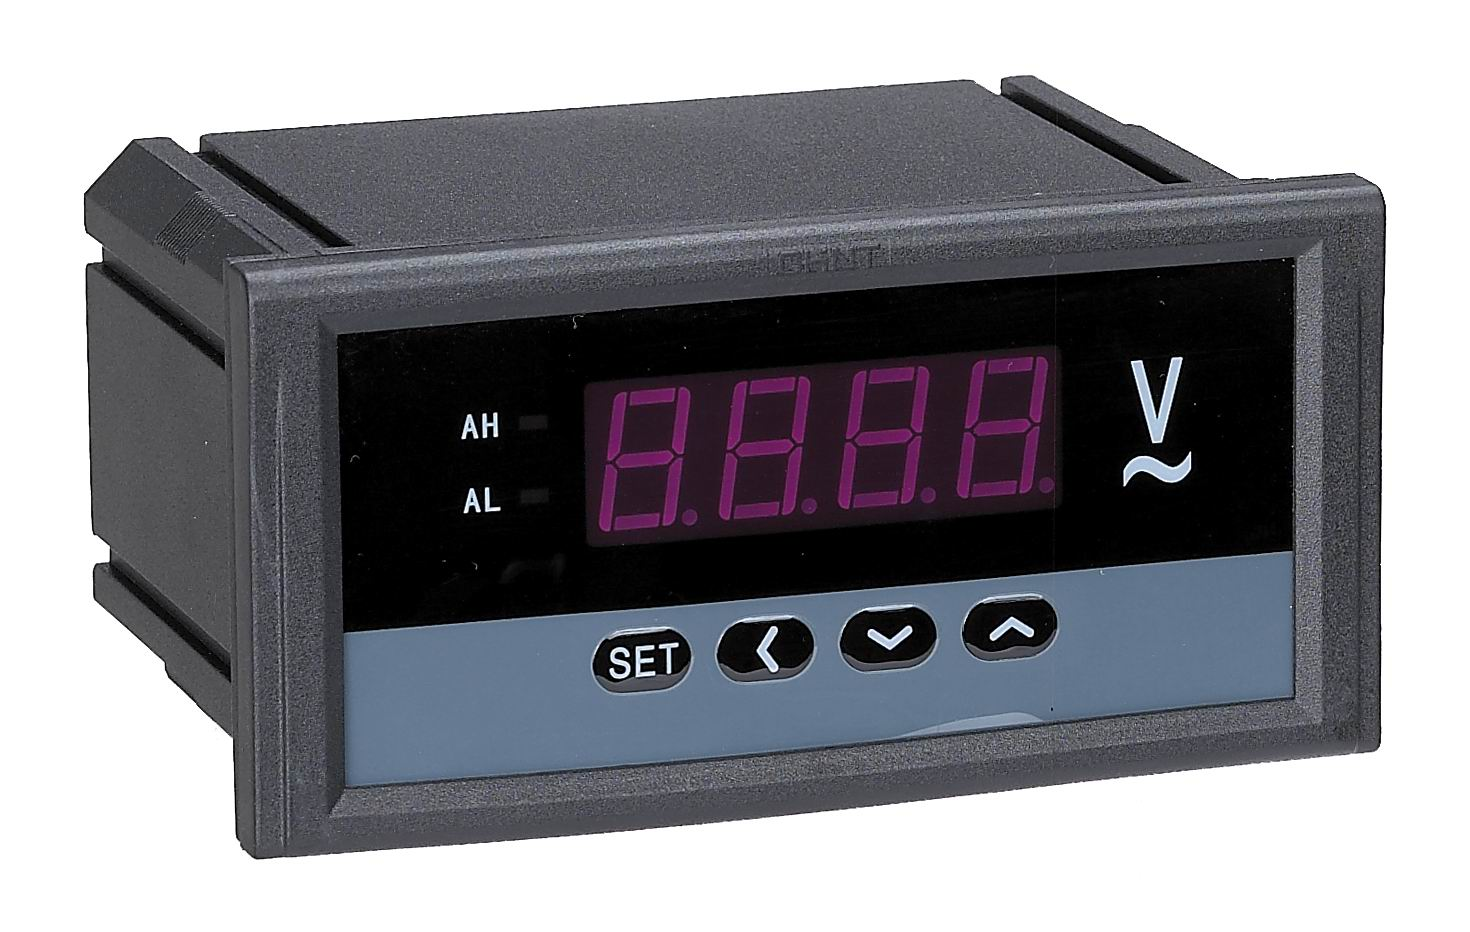 PZ7777-□ series digital Voltmeter